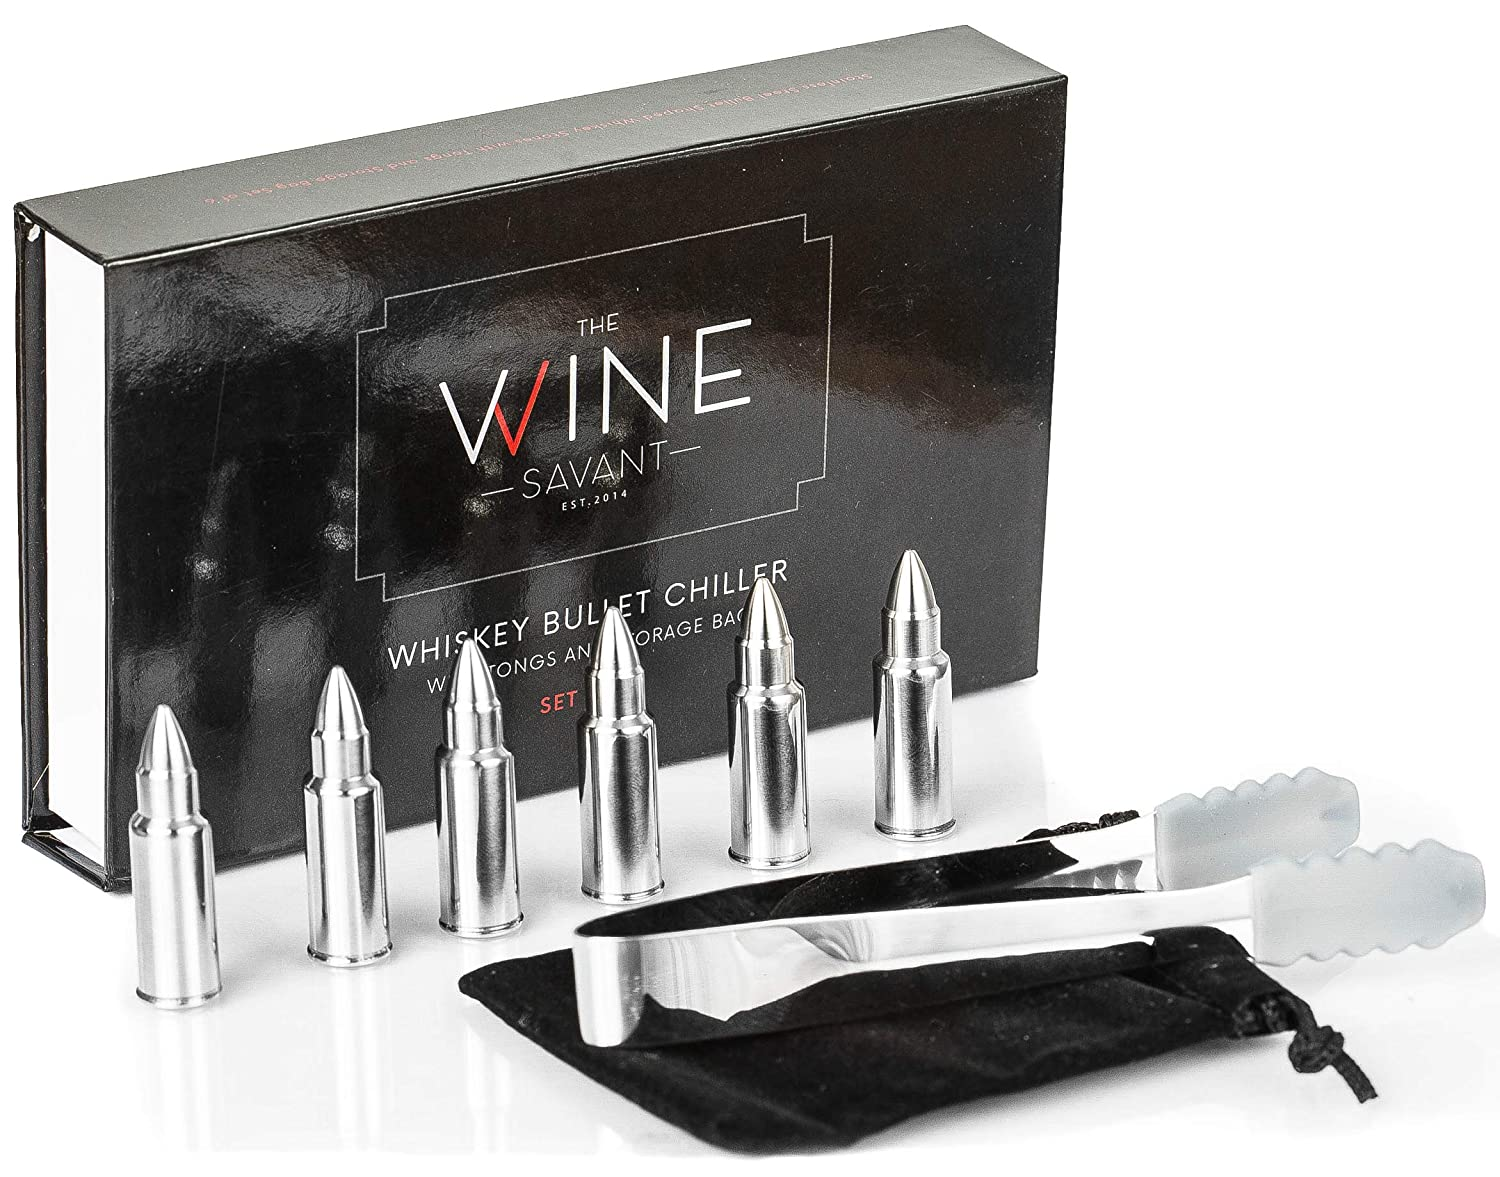 Whiskey Stones Bullets Stainless Steel Bullet Chillers Set Of 6 Circuit Scribe Conductive Ink Basic Kit Electroninks Cskitbasic The Wine Savant